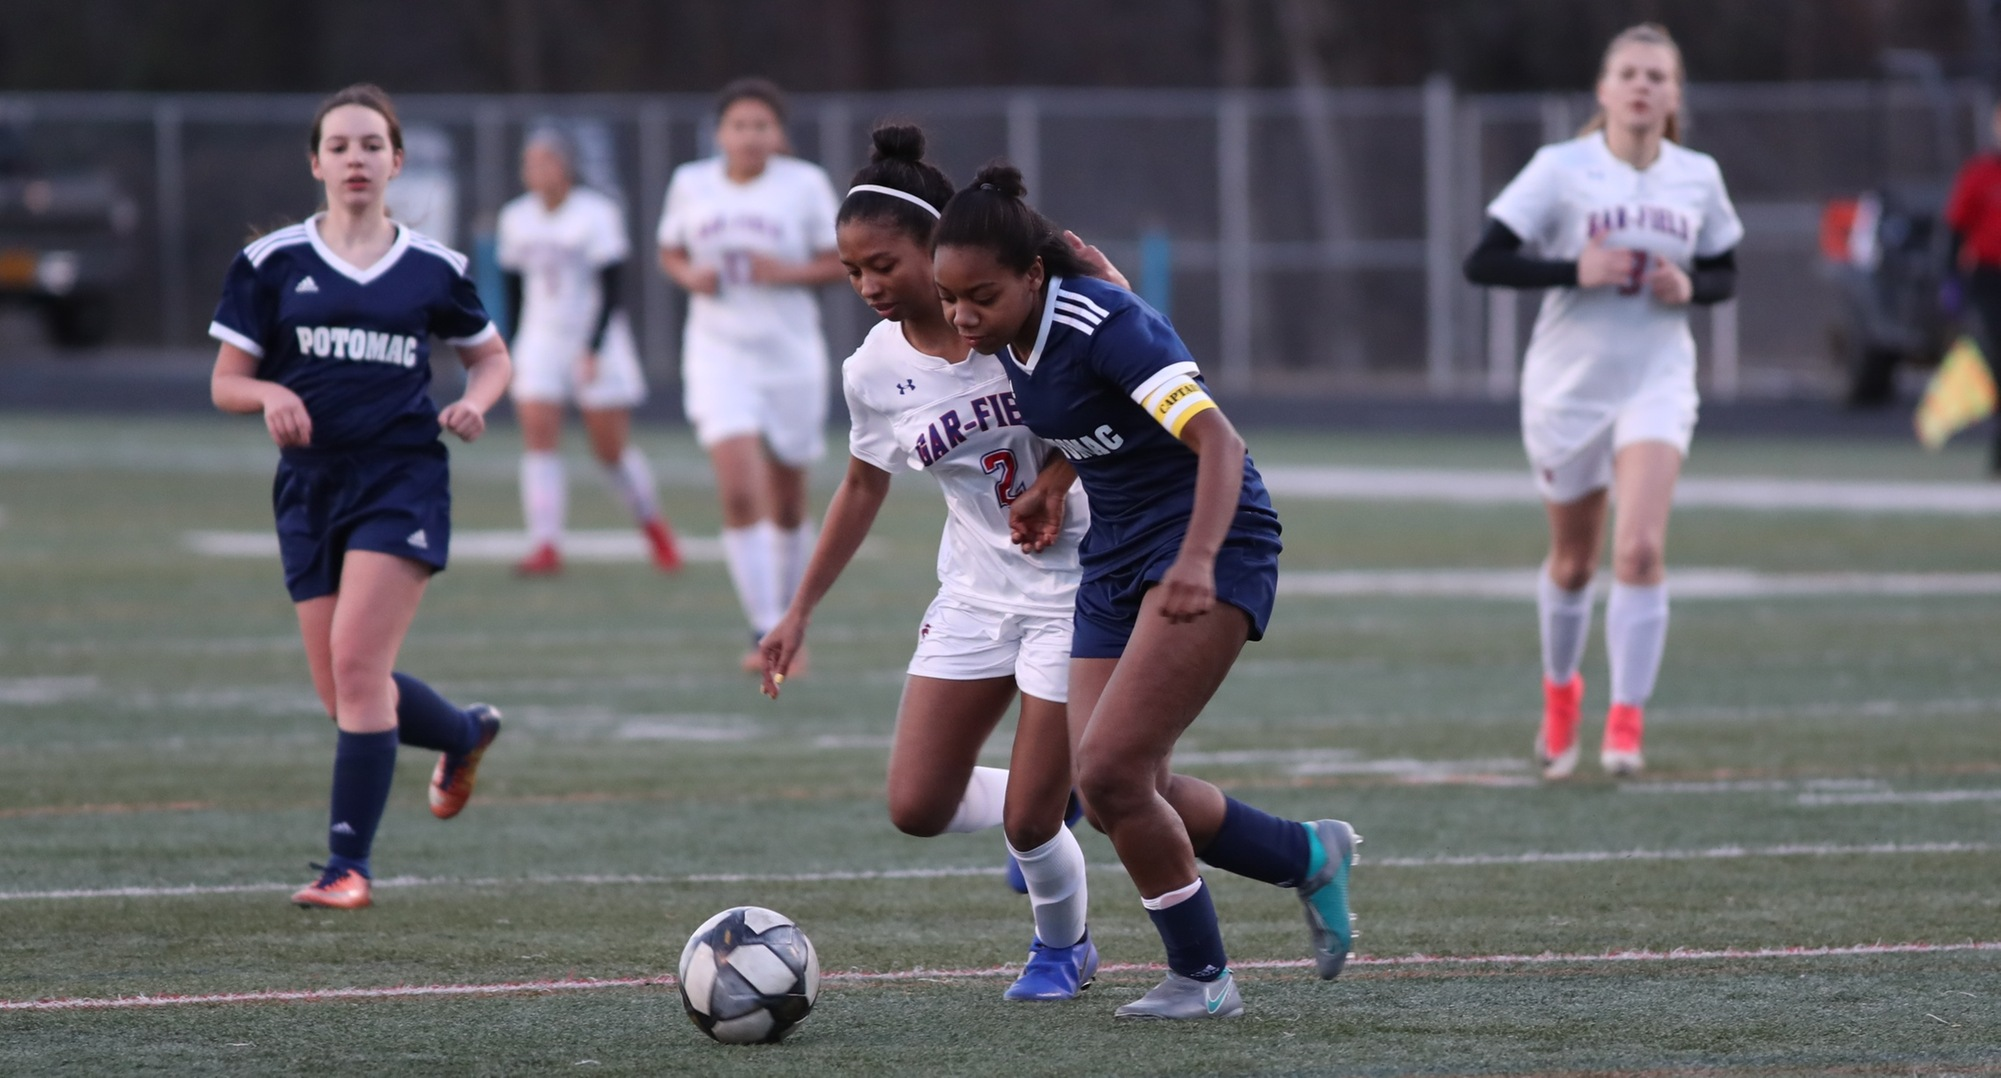 Garcia Continues Virginia Pipeline for JWU Women's Soccer